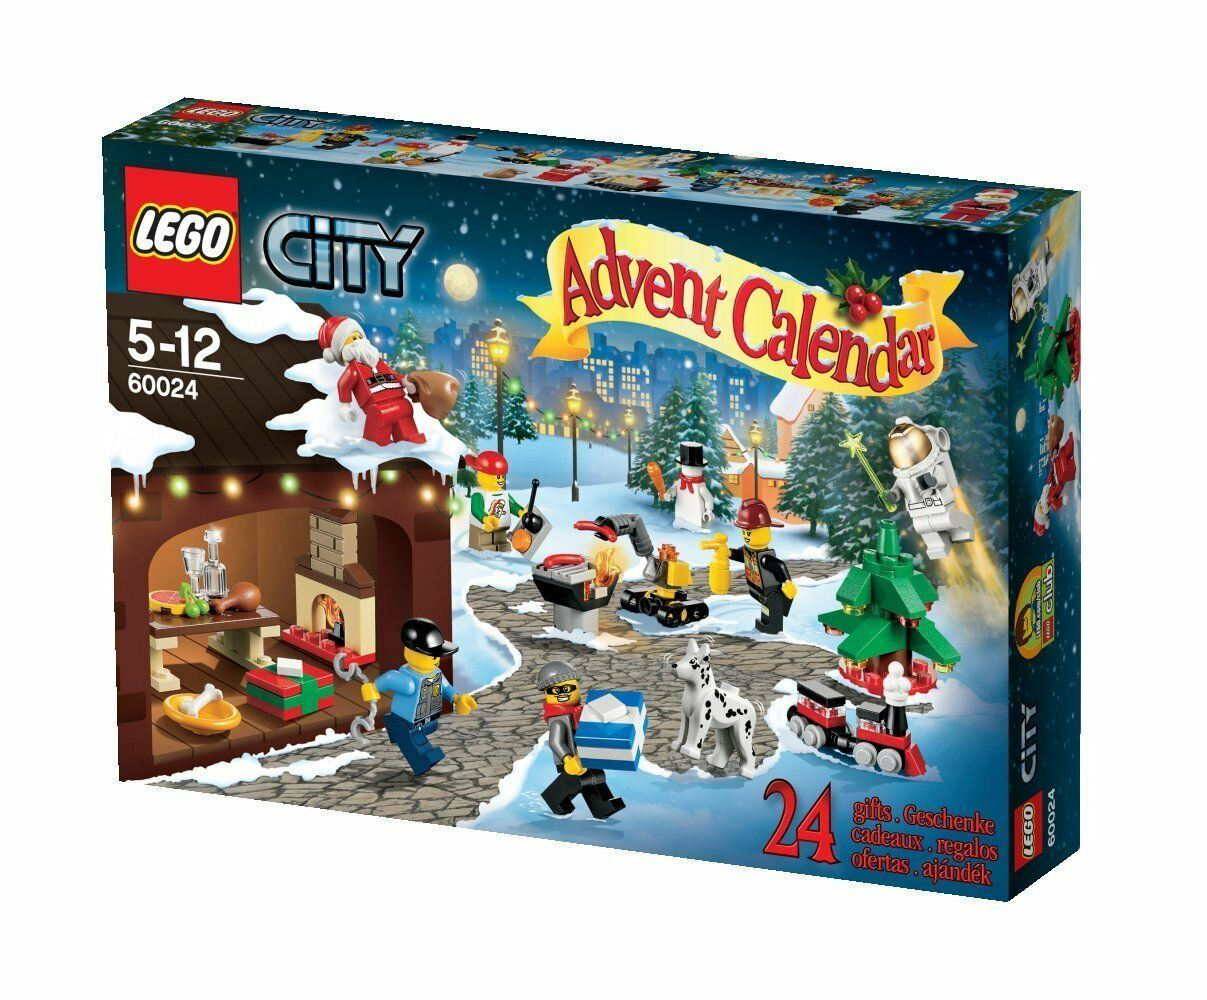 Lego City 60024 Adventskalender Weihnachten